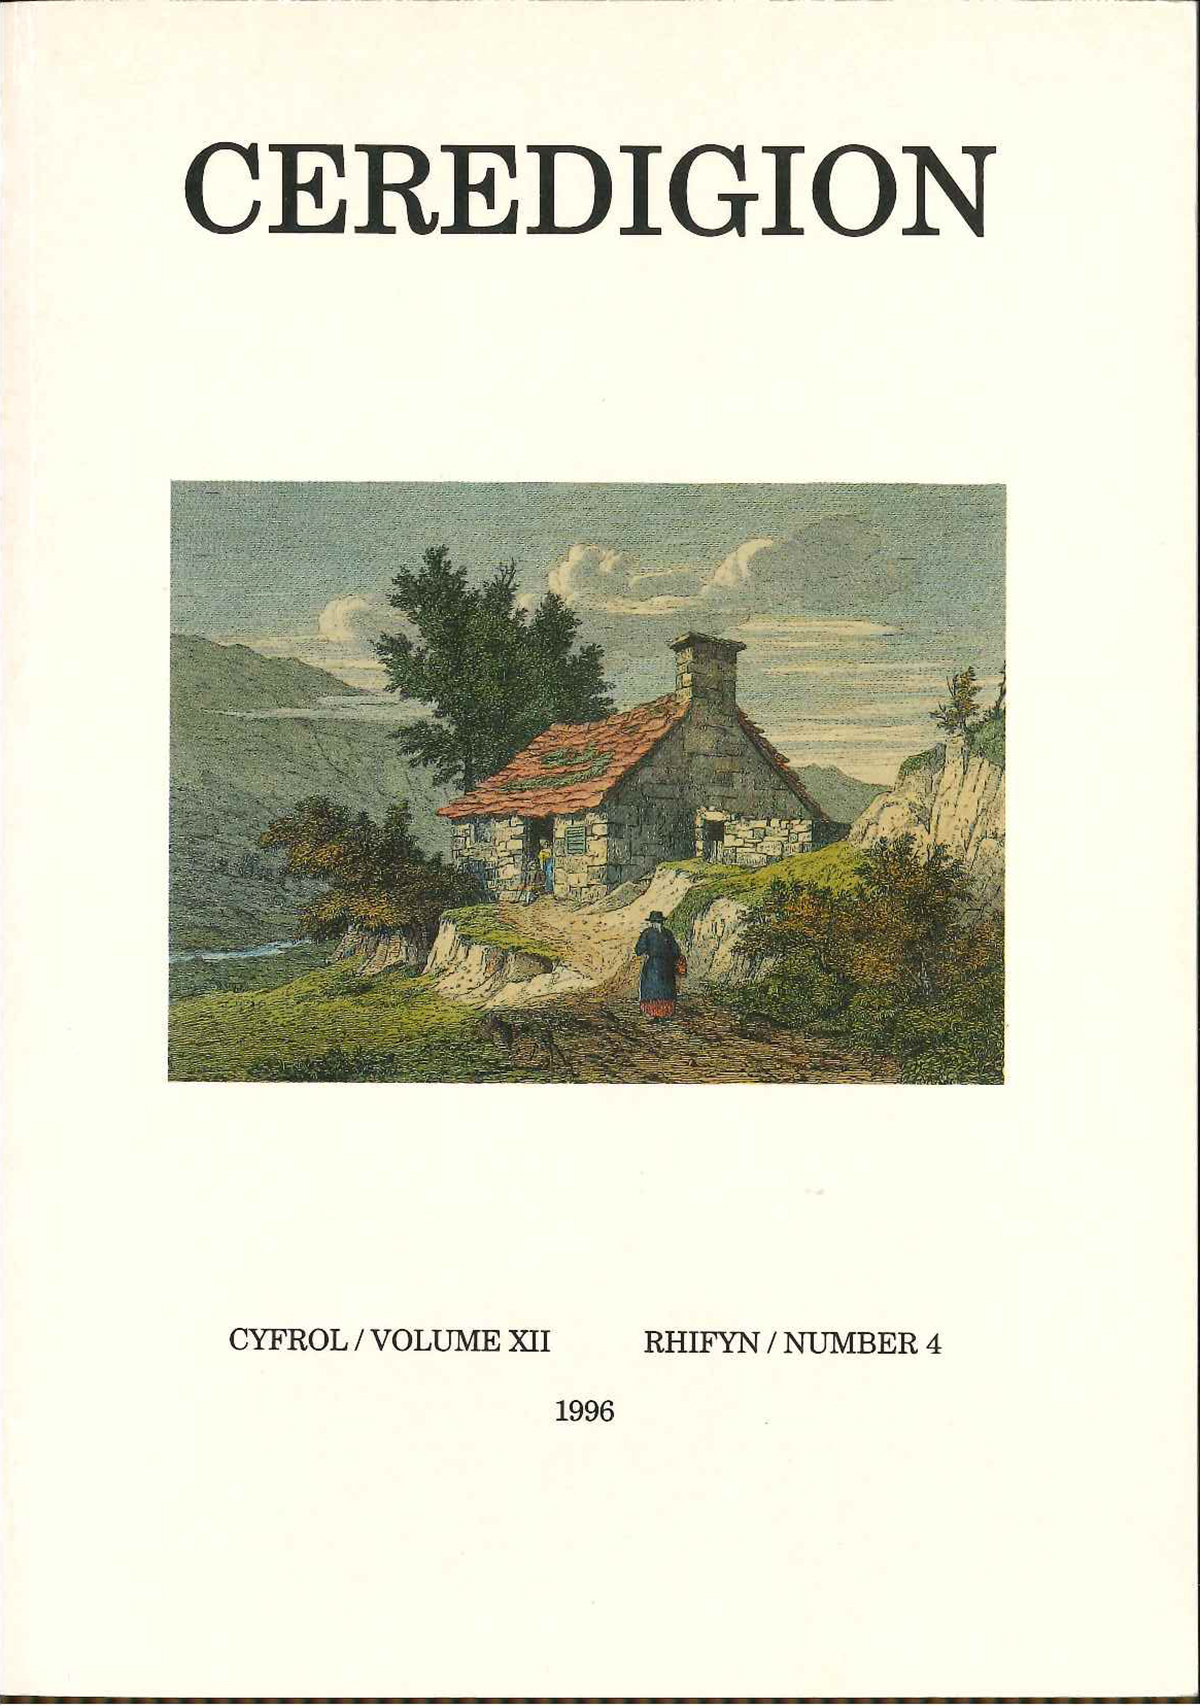 Ceredigion Journal of the Ceredigion Antiquarian Society Vol XII, No 4 1996 - ISBN 0069 2263